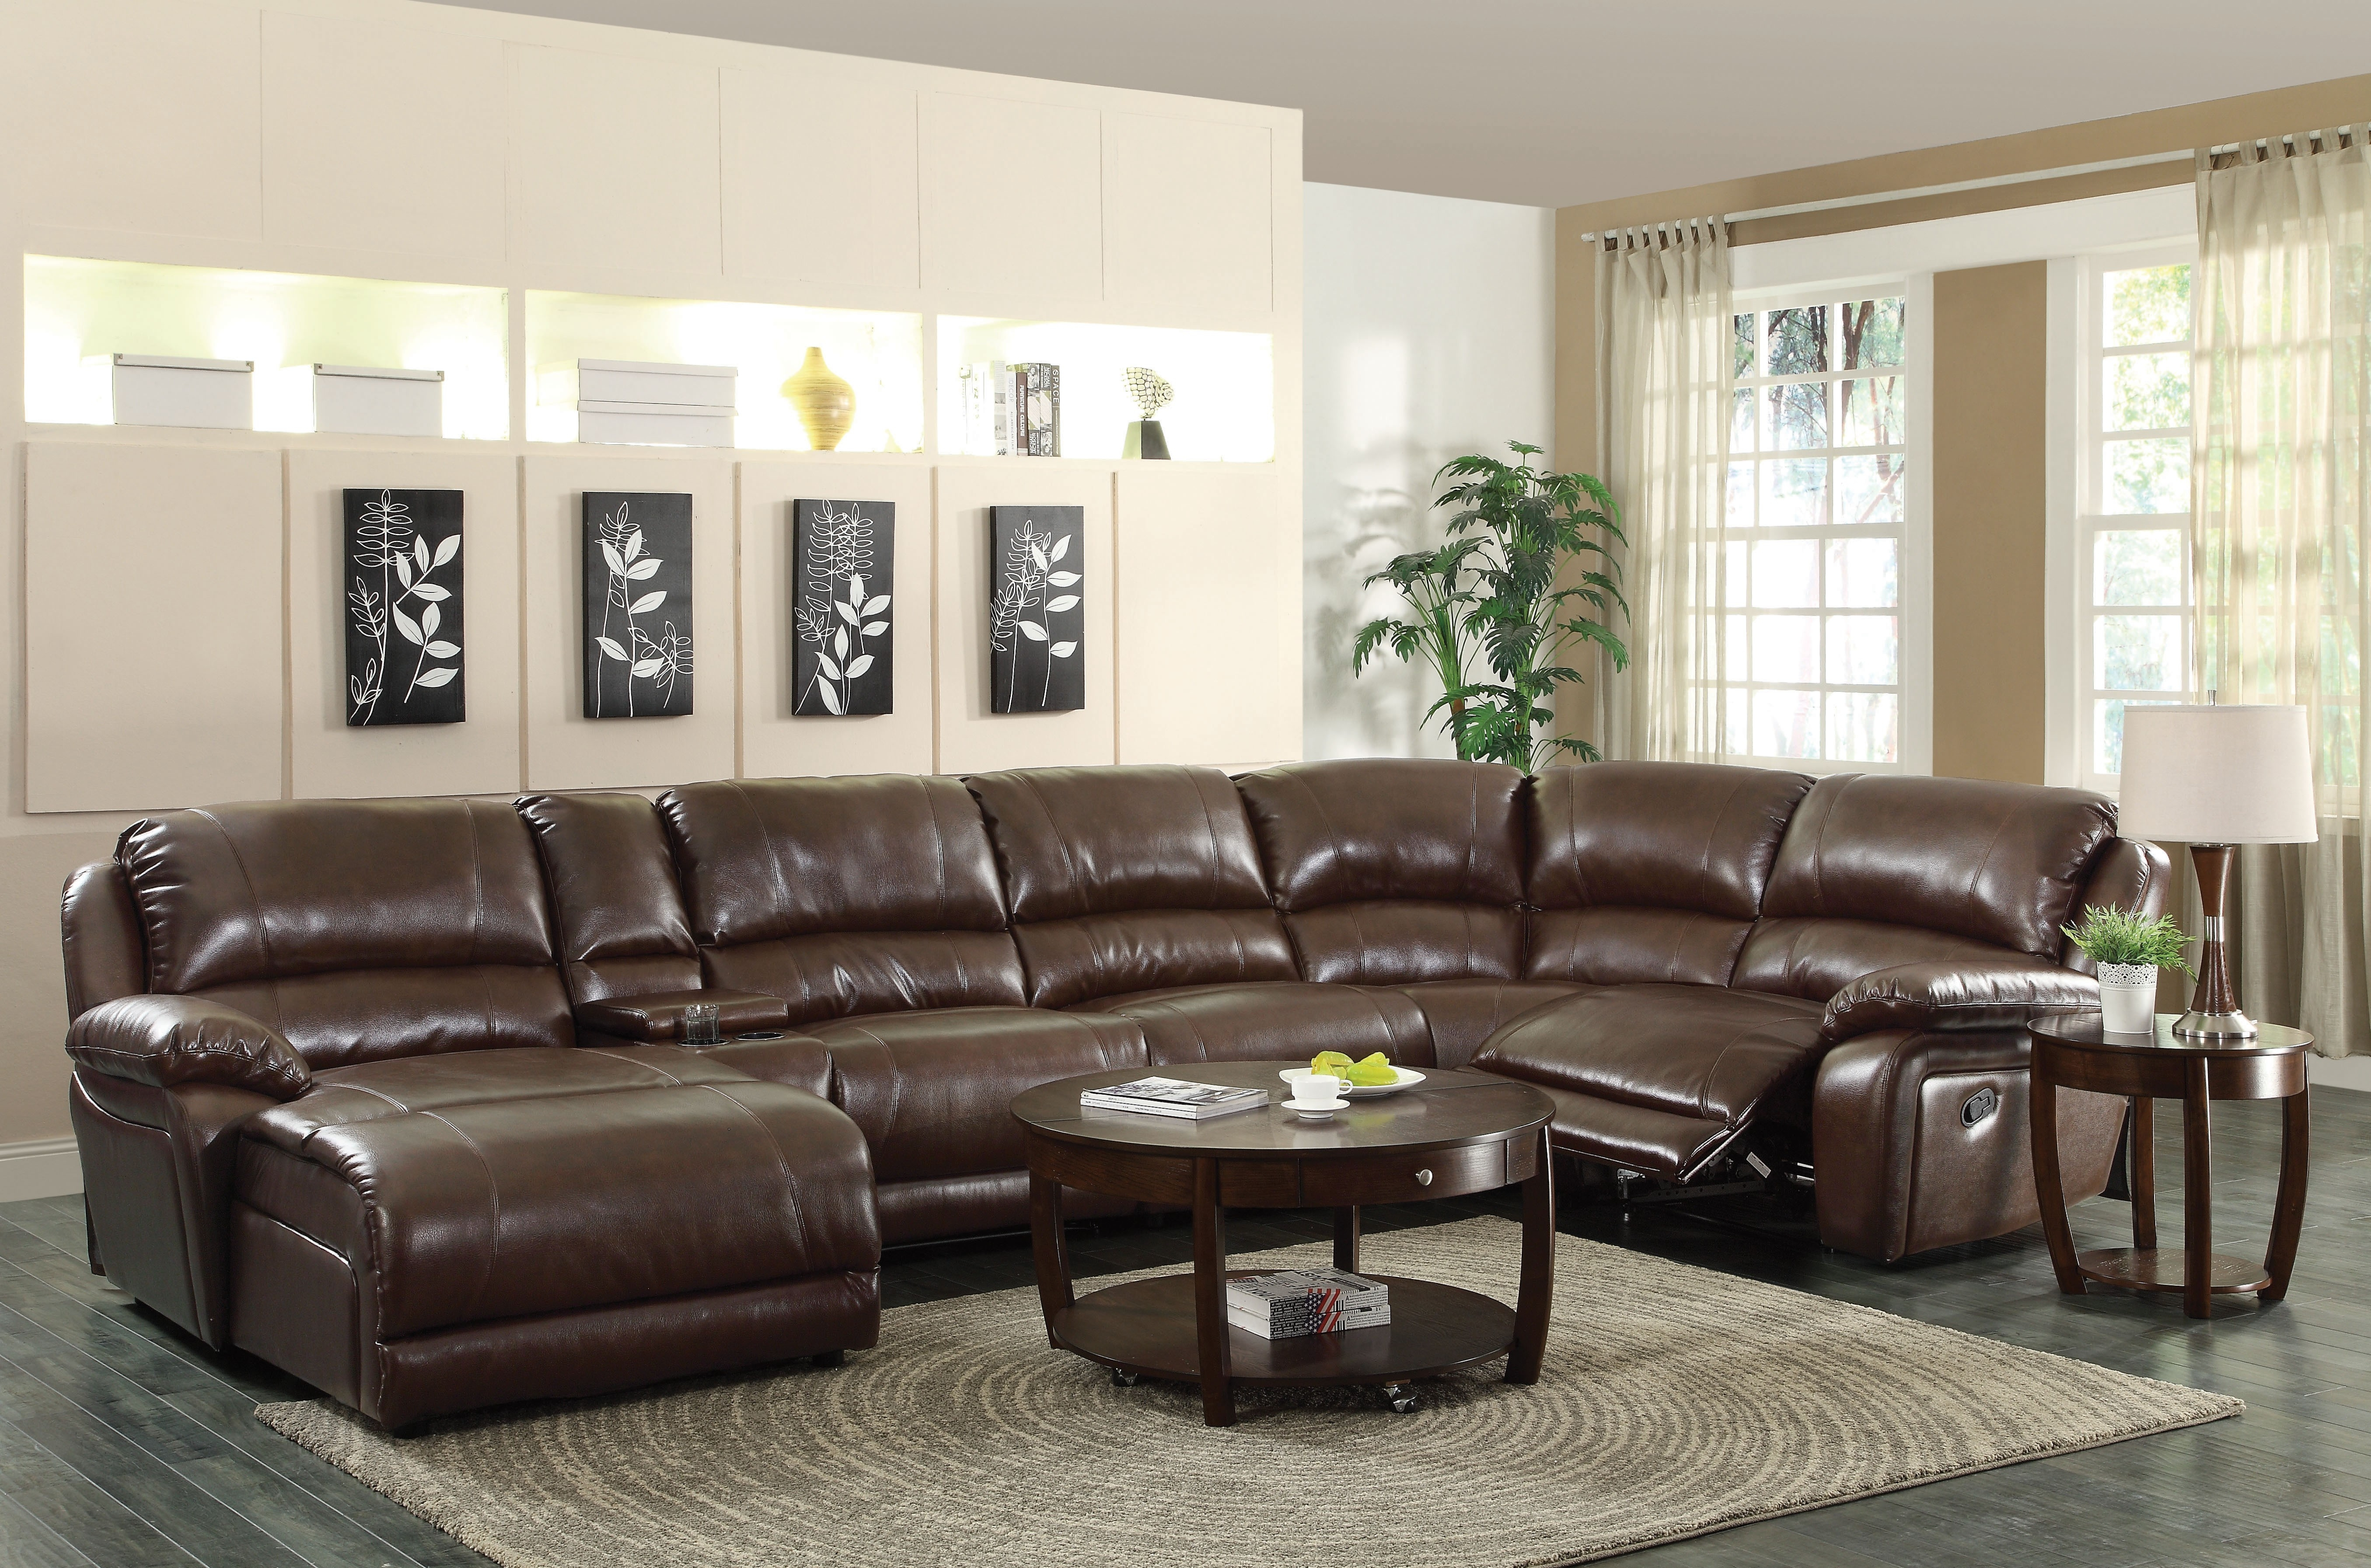 Brown Leather Sectional Sofa With Chaise Inside 6 Piece Leather Sectional Sofa (Image 2 of 15)